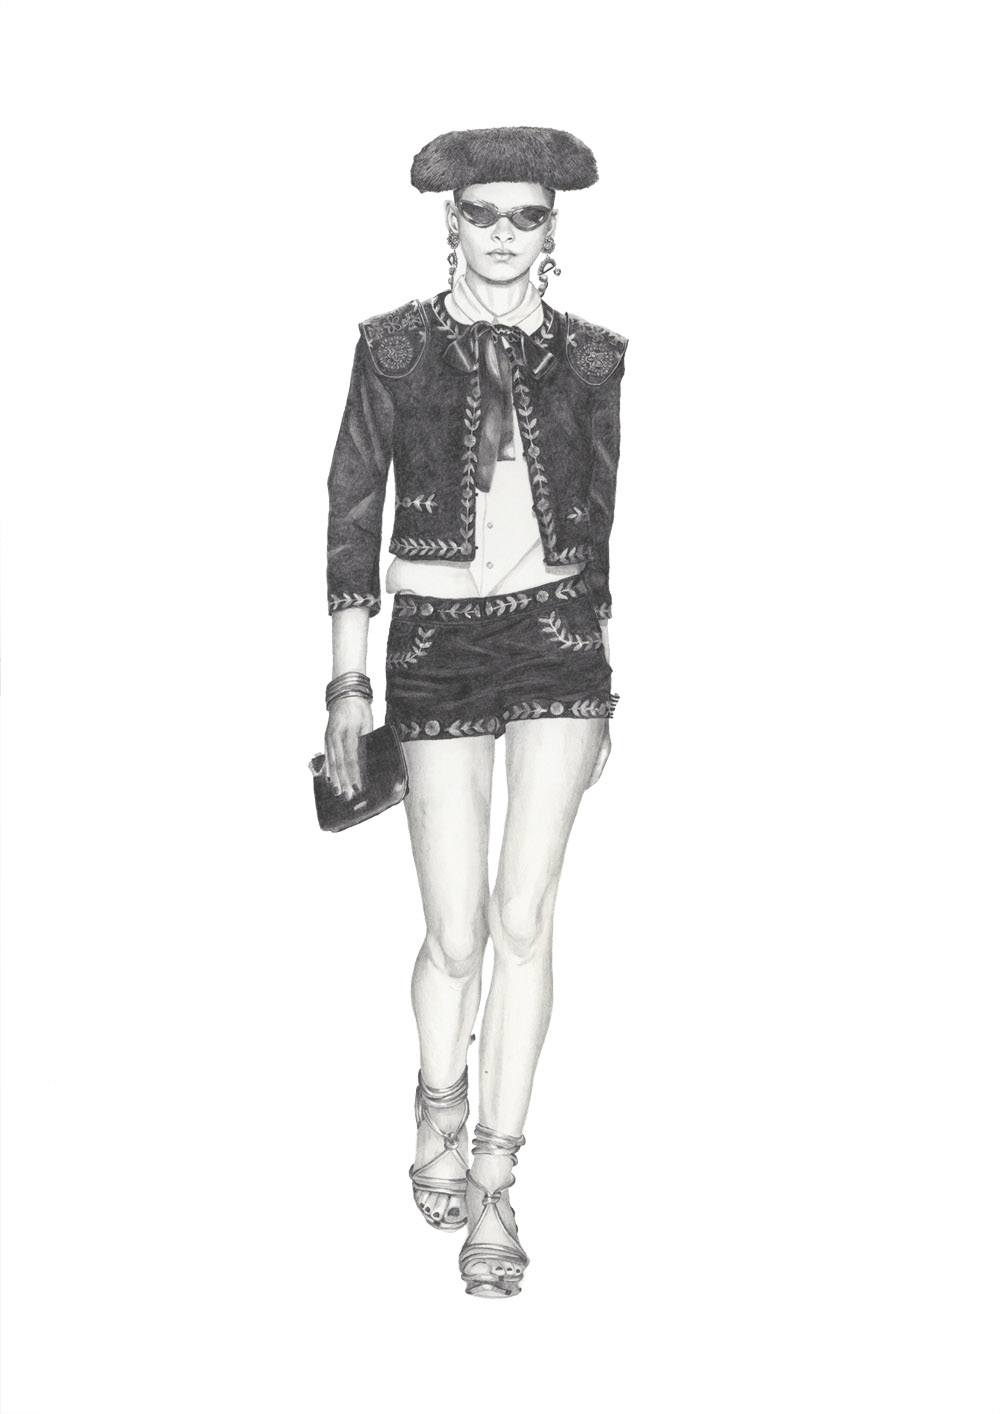 Moschino Spring 2012 - Graphite pencil runway illustration by Alison Sargent